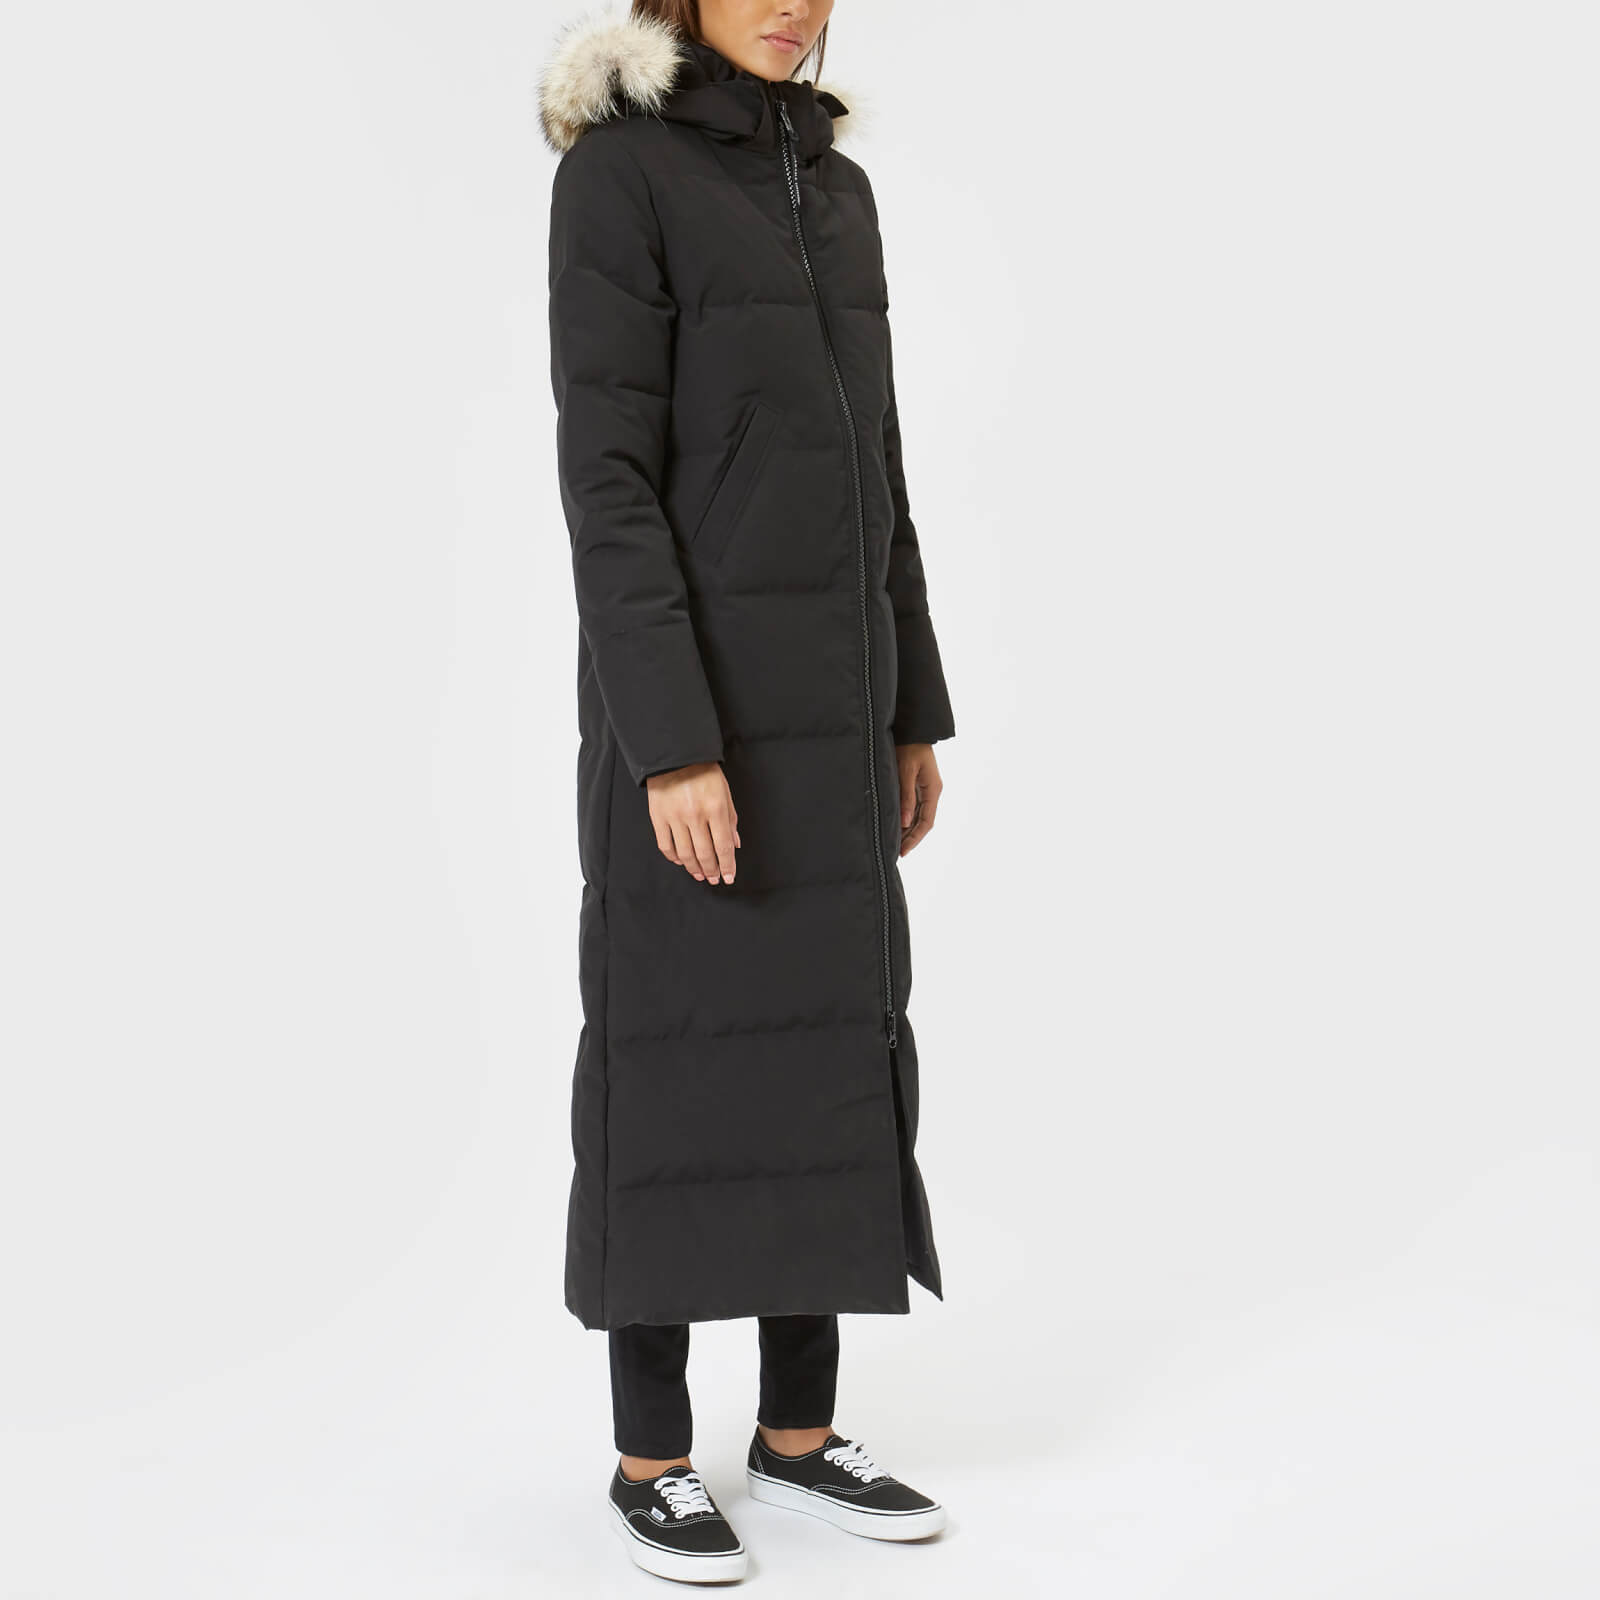 9147acaa5849f Canada Goose Women s Mystique Parka - Black - Free UK Delivery over £50